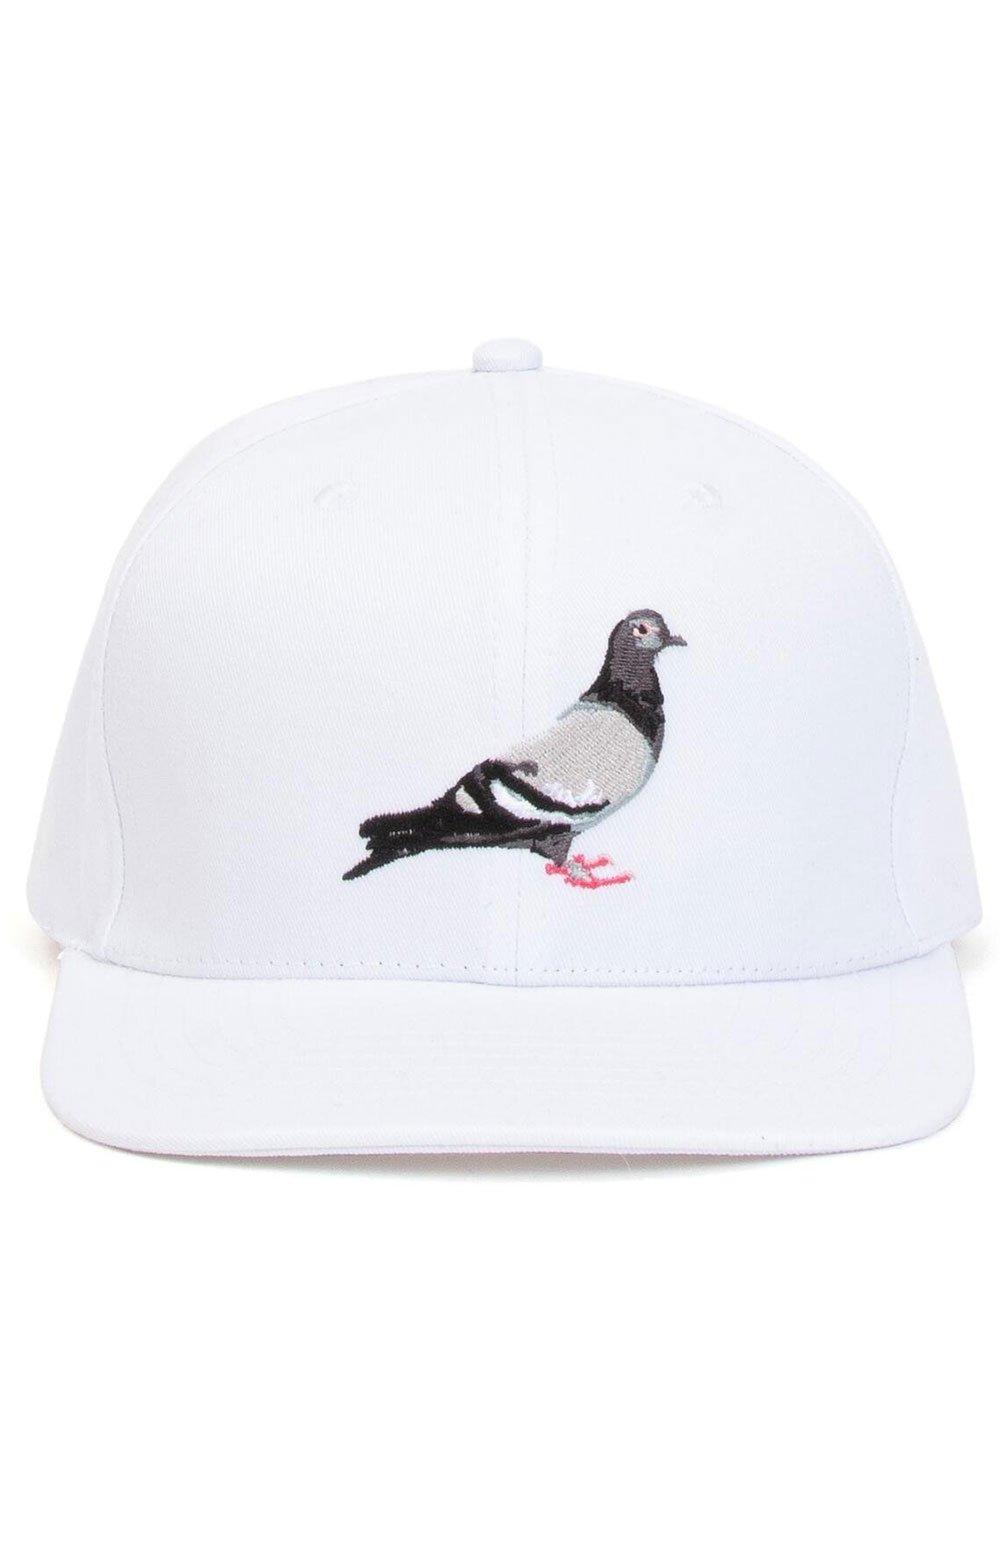 Pigeon Snap-Back Hat - White  2